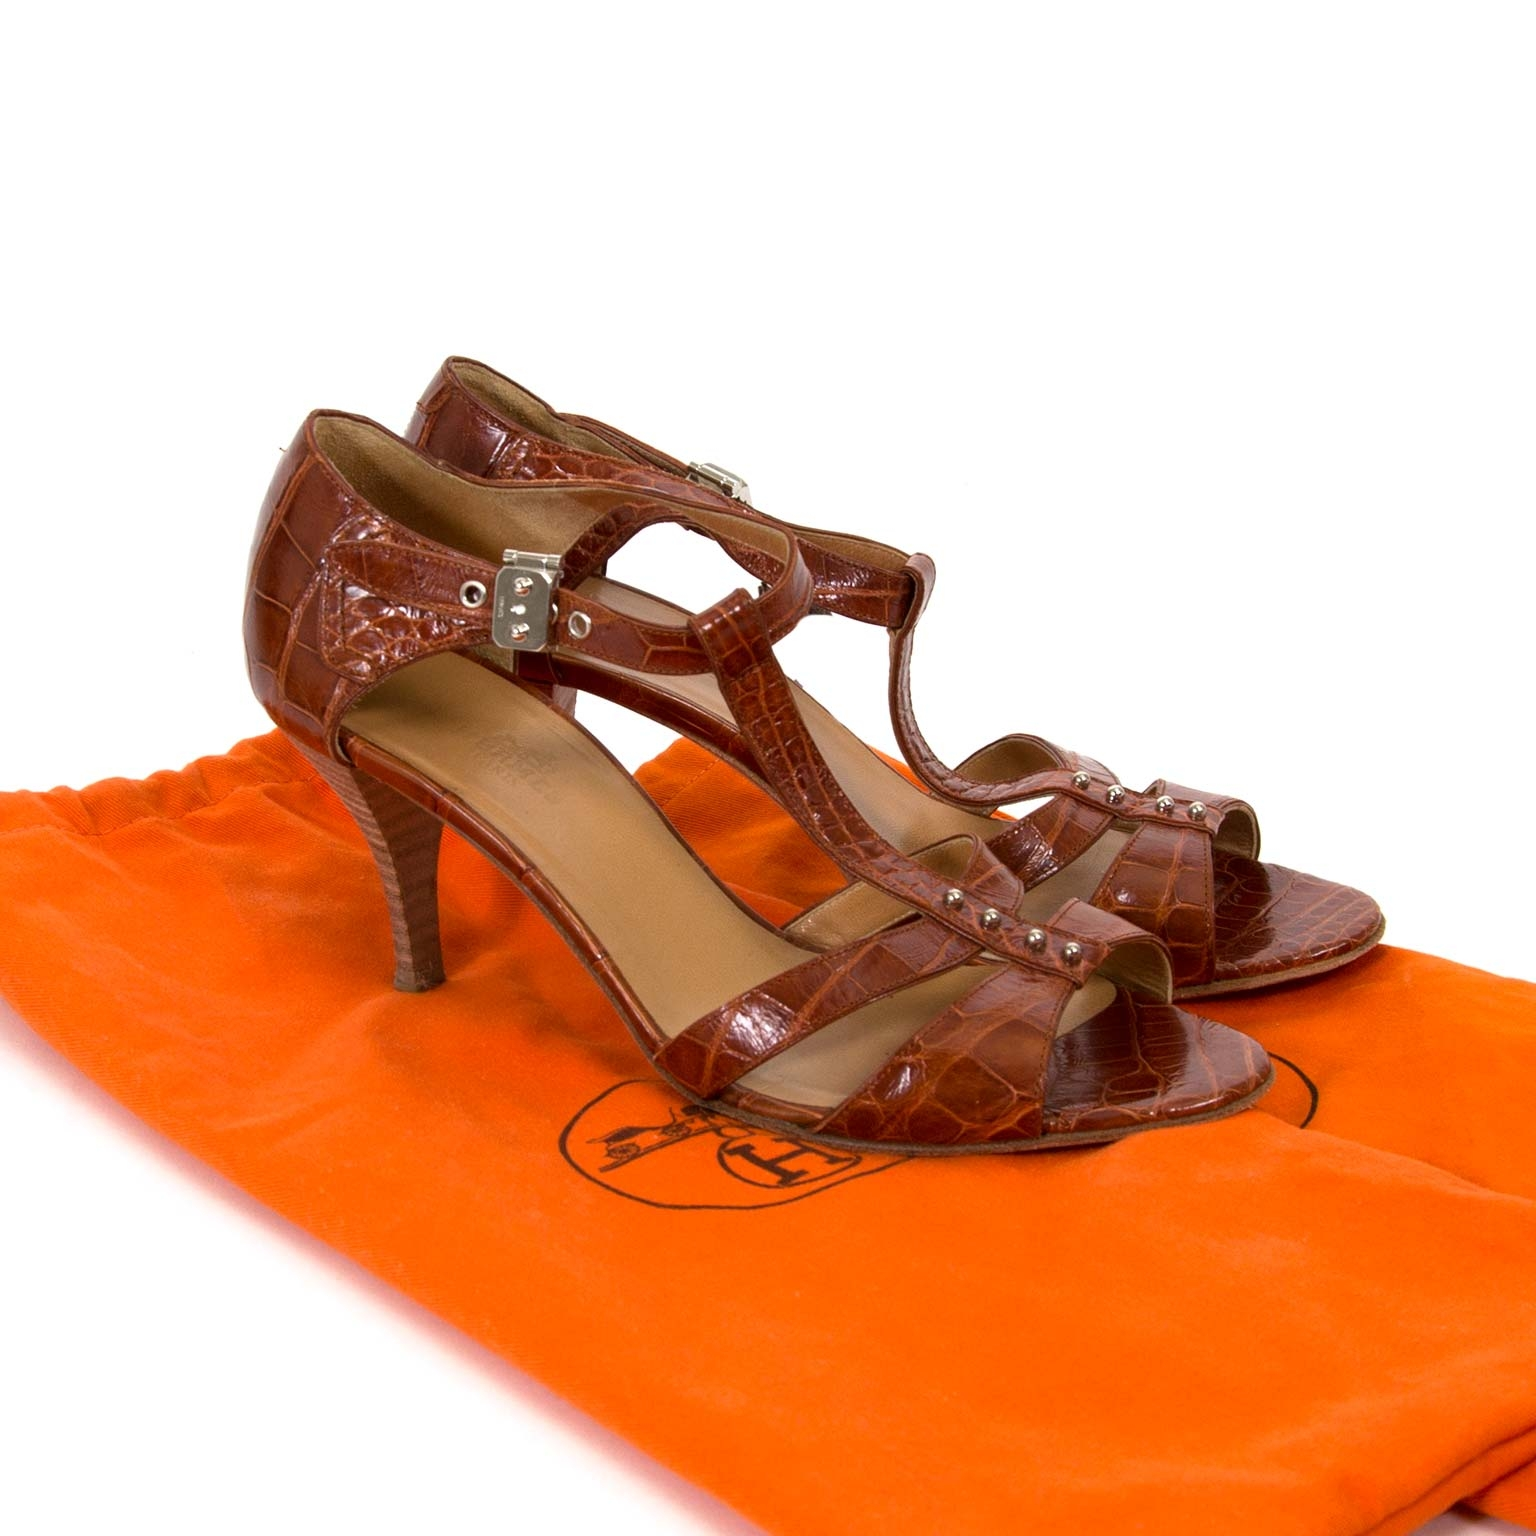 hermès croco brown sandals now for sale at labellov vintage fashion webshop belgium